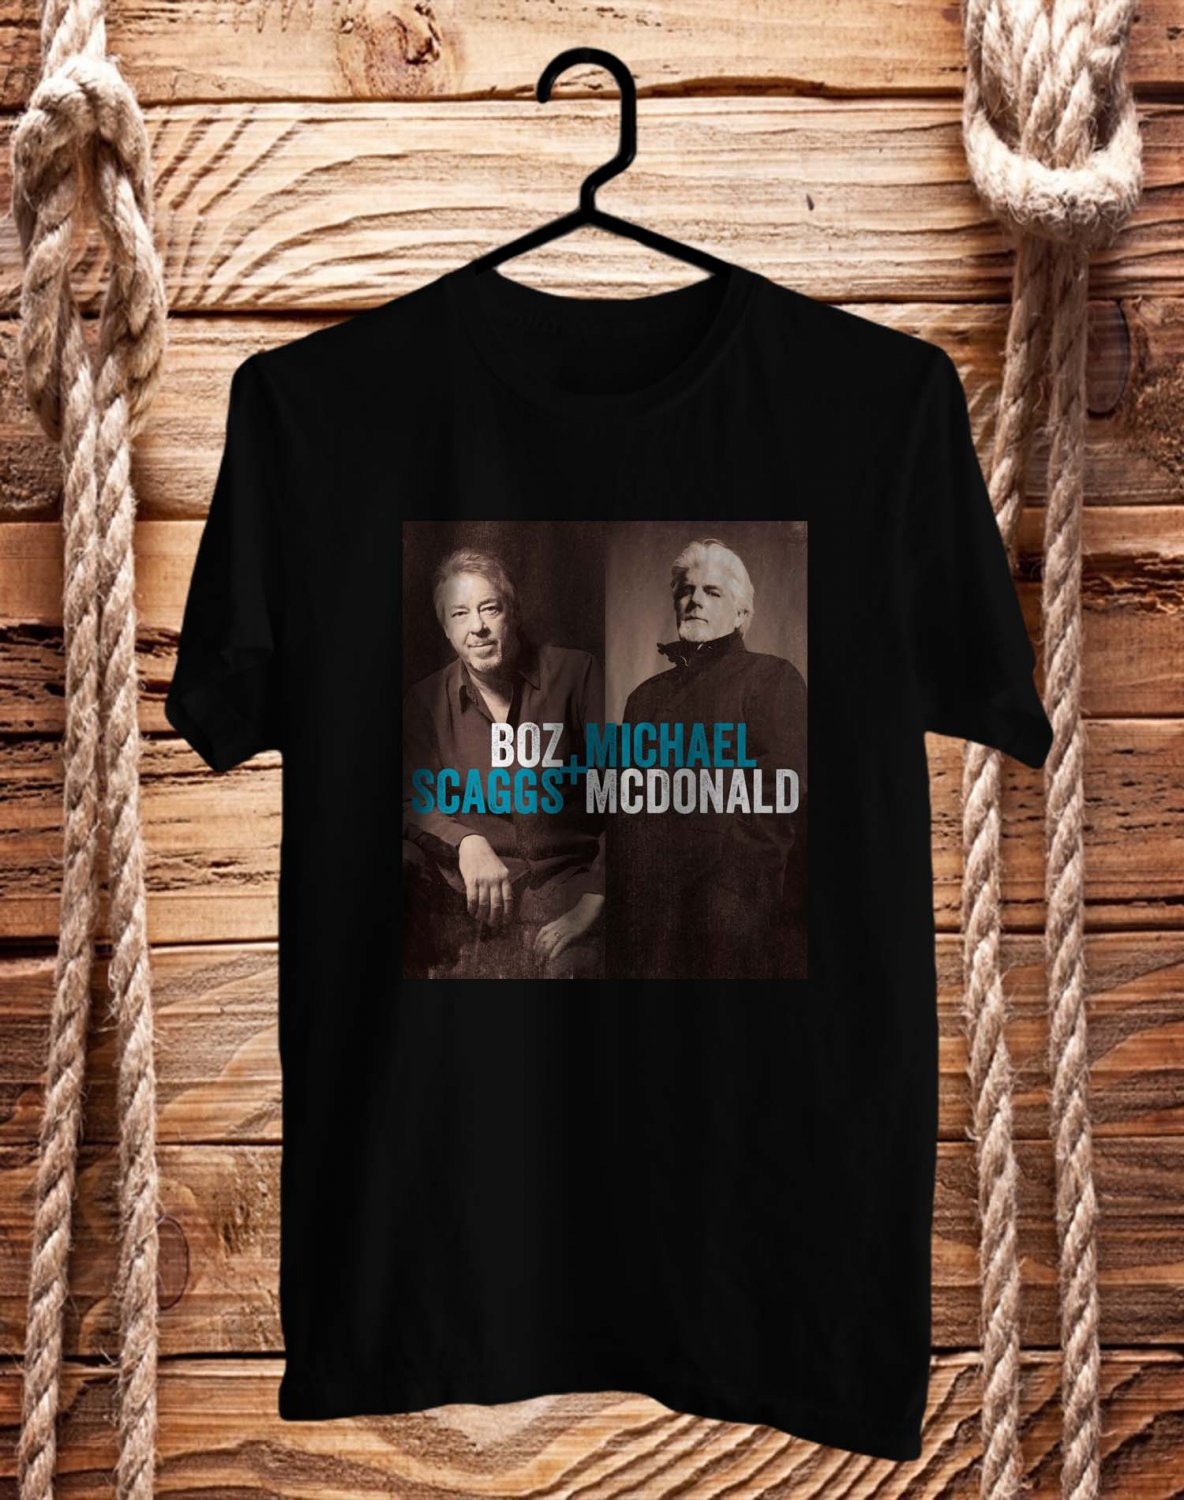 Bozz Scaggs & Michael McDonald tour 2017 Logo Black Tee's  Front Side by Complexart